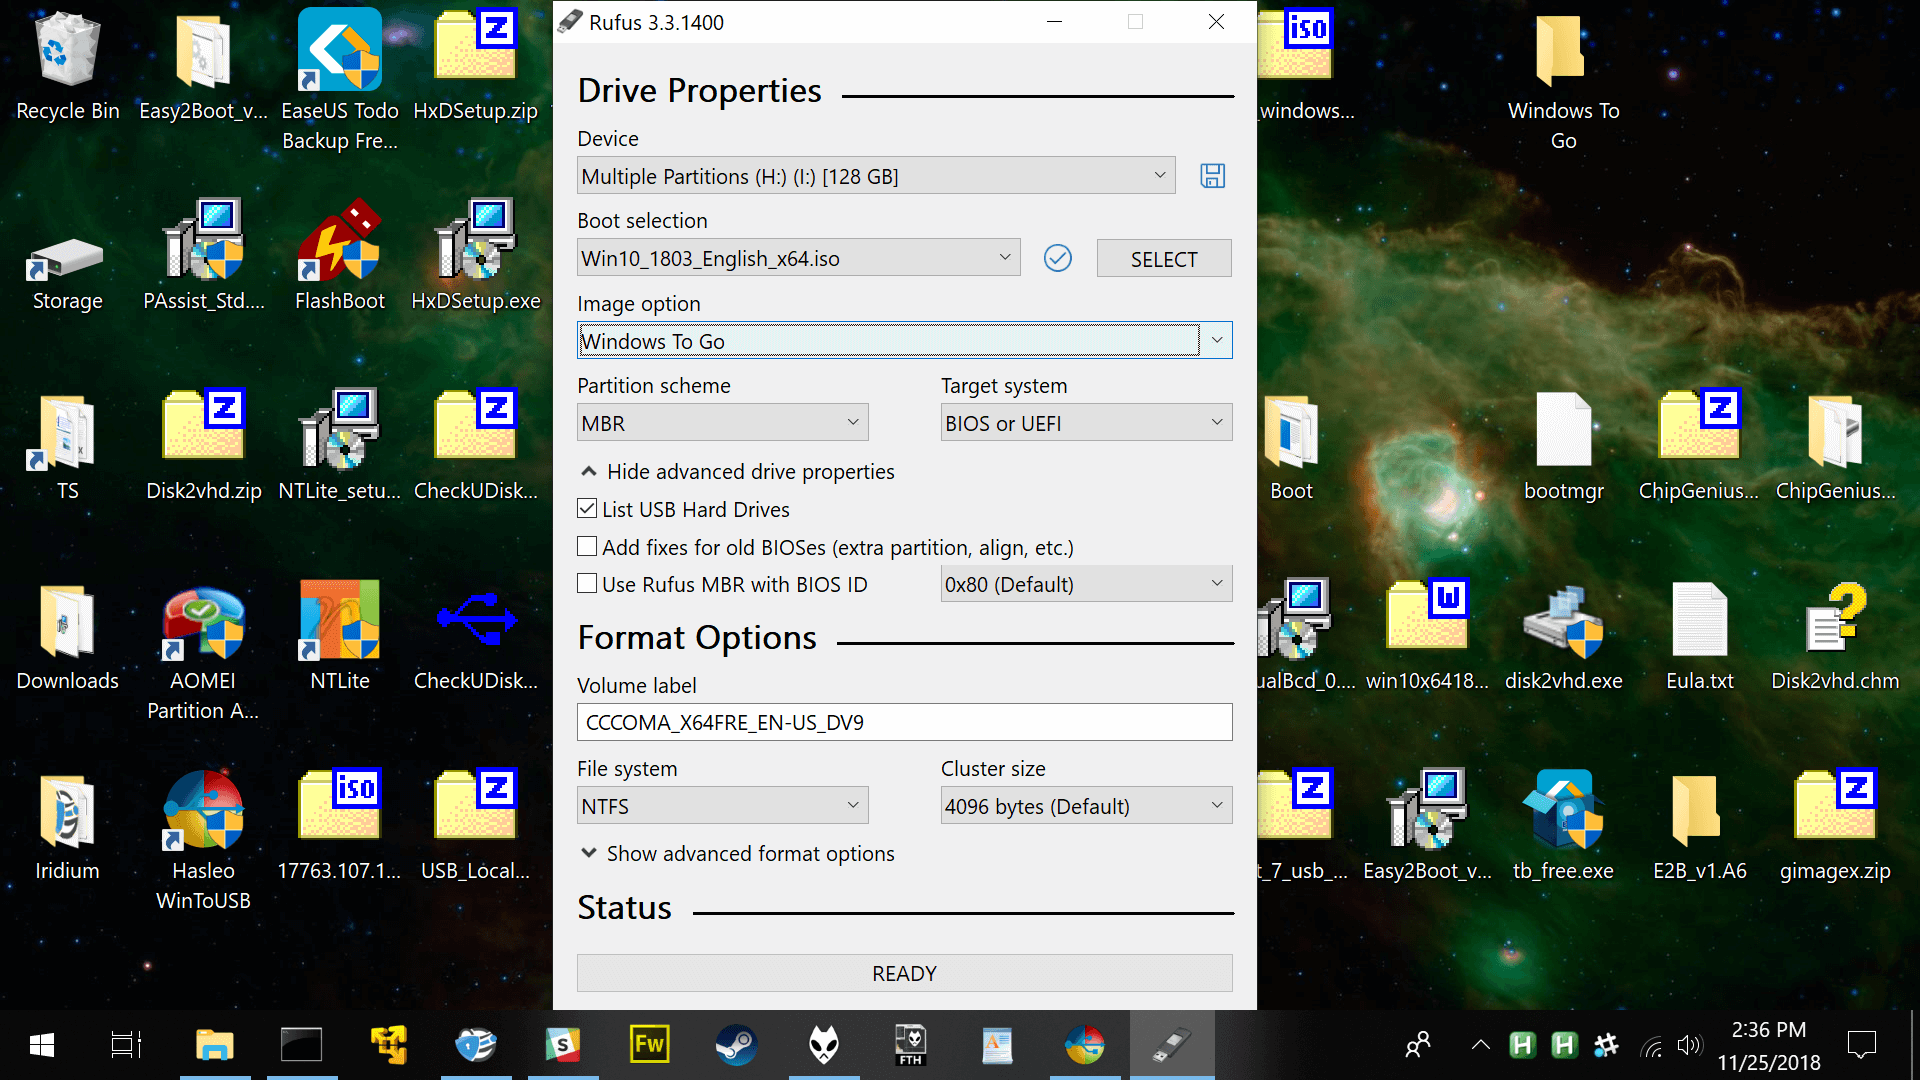 Windows To Go: How to Install and Run Windows 10 from a USB Drive